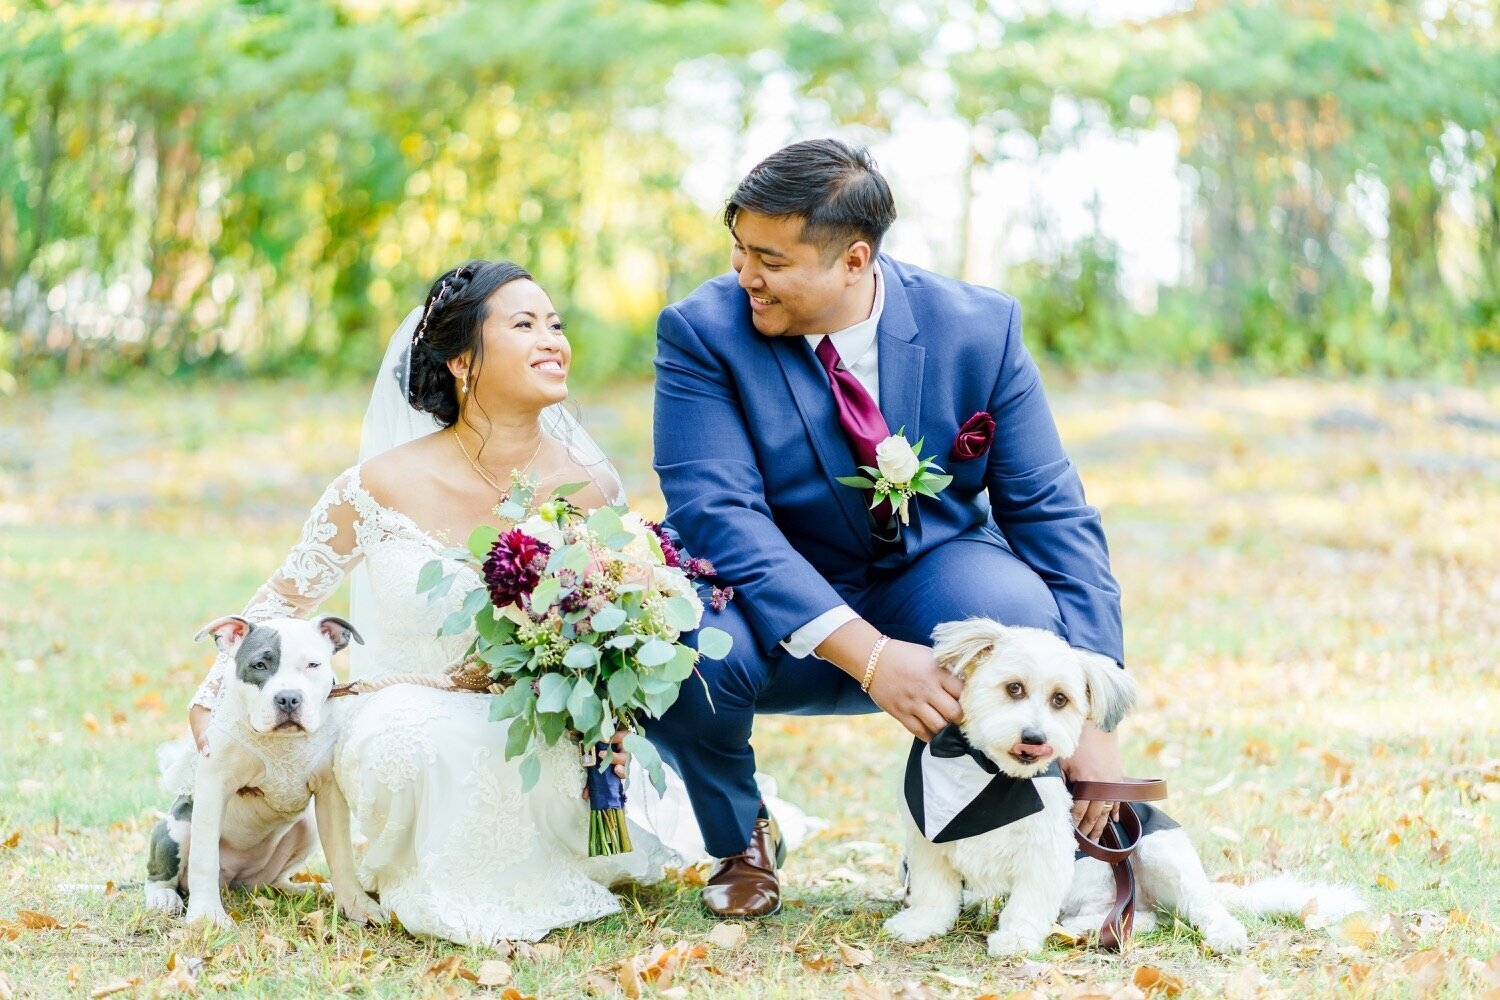 Bride and groom with colorful bouquet bending down and smiling with their dogs